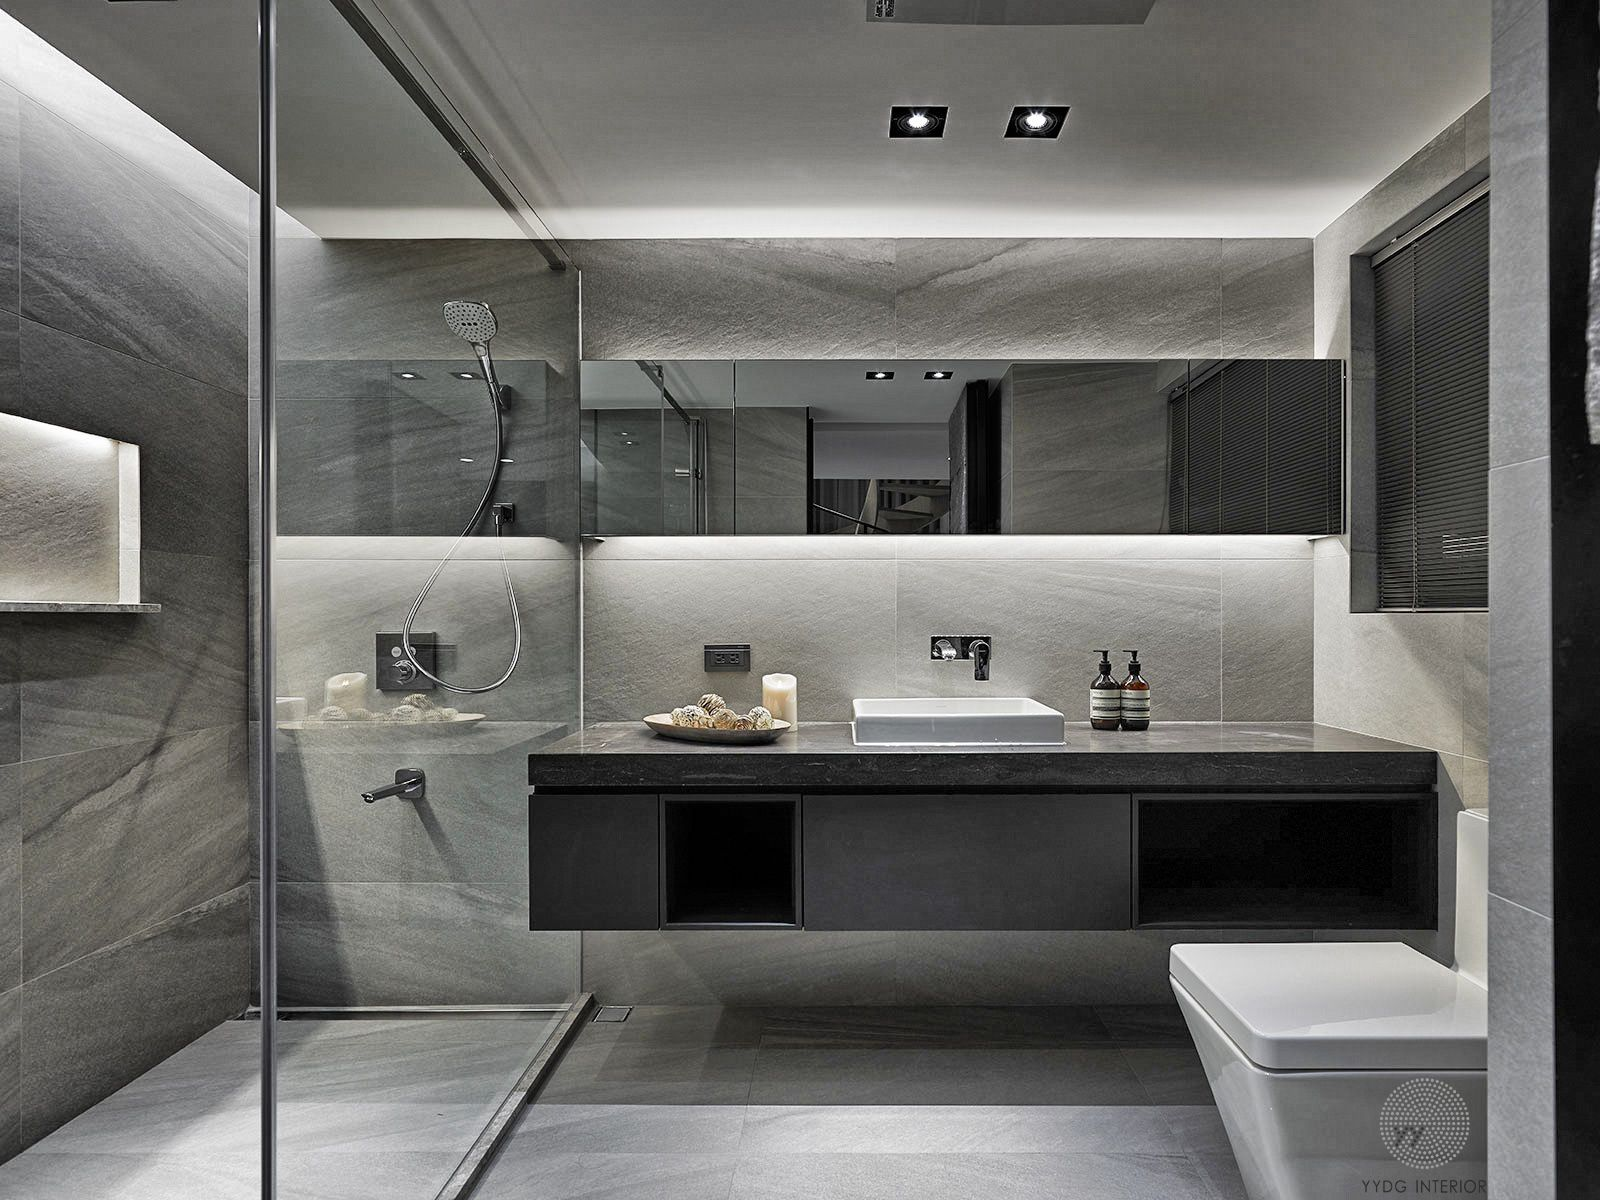 Floating Toilet And Vanity With Two Sinks And A Walk In Shower With Two Shower Heads And A Floating Be Stylish Bathroom Modern Bathroom Design Modern Bathroom